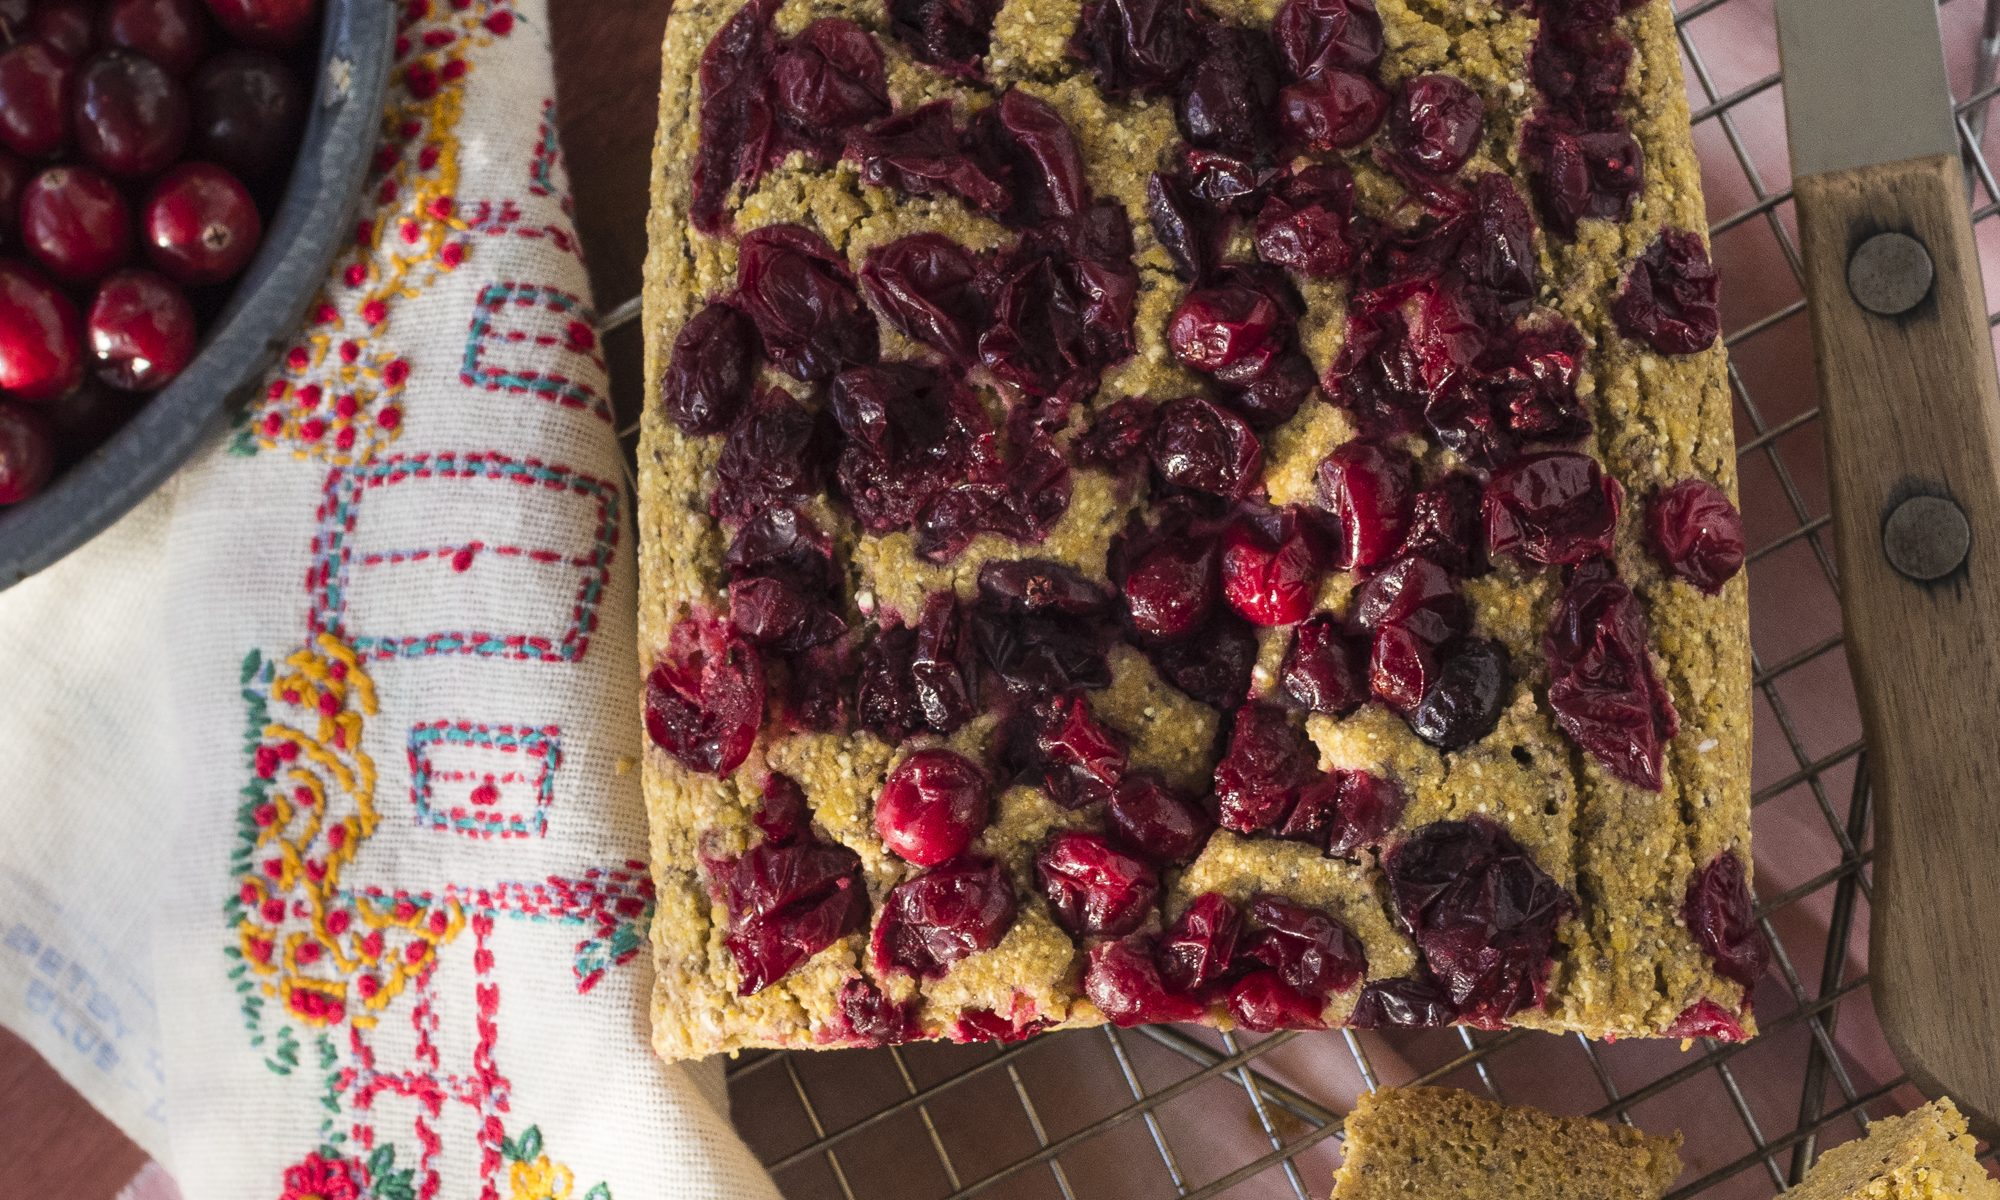 CORNBREAD WITH CRANBERRIES